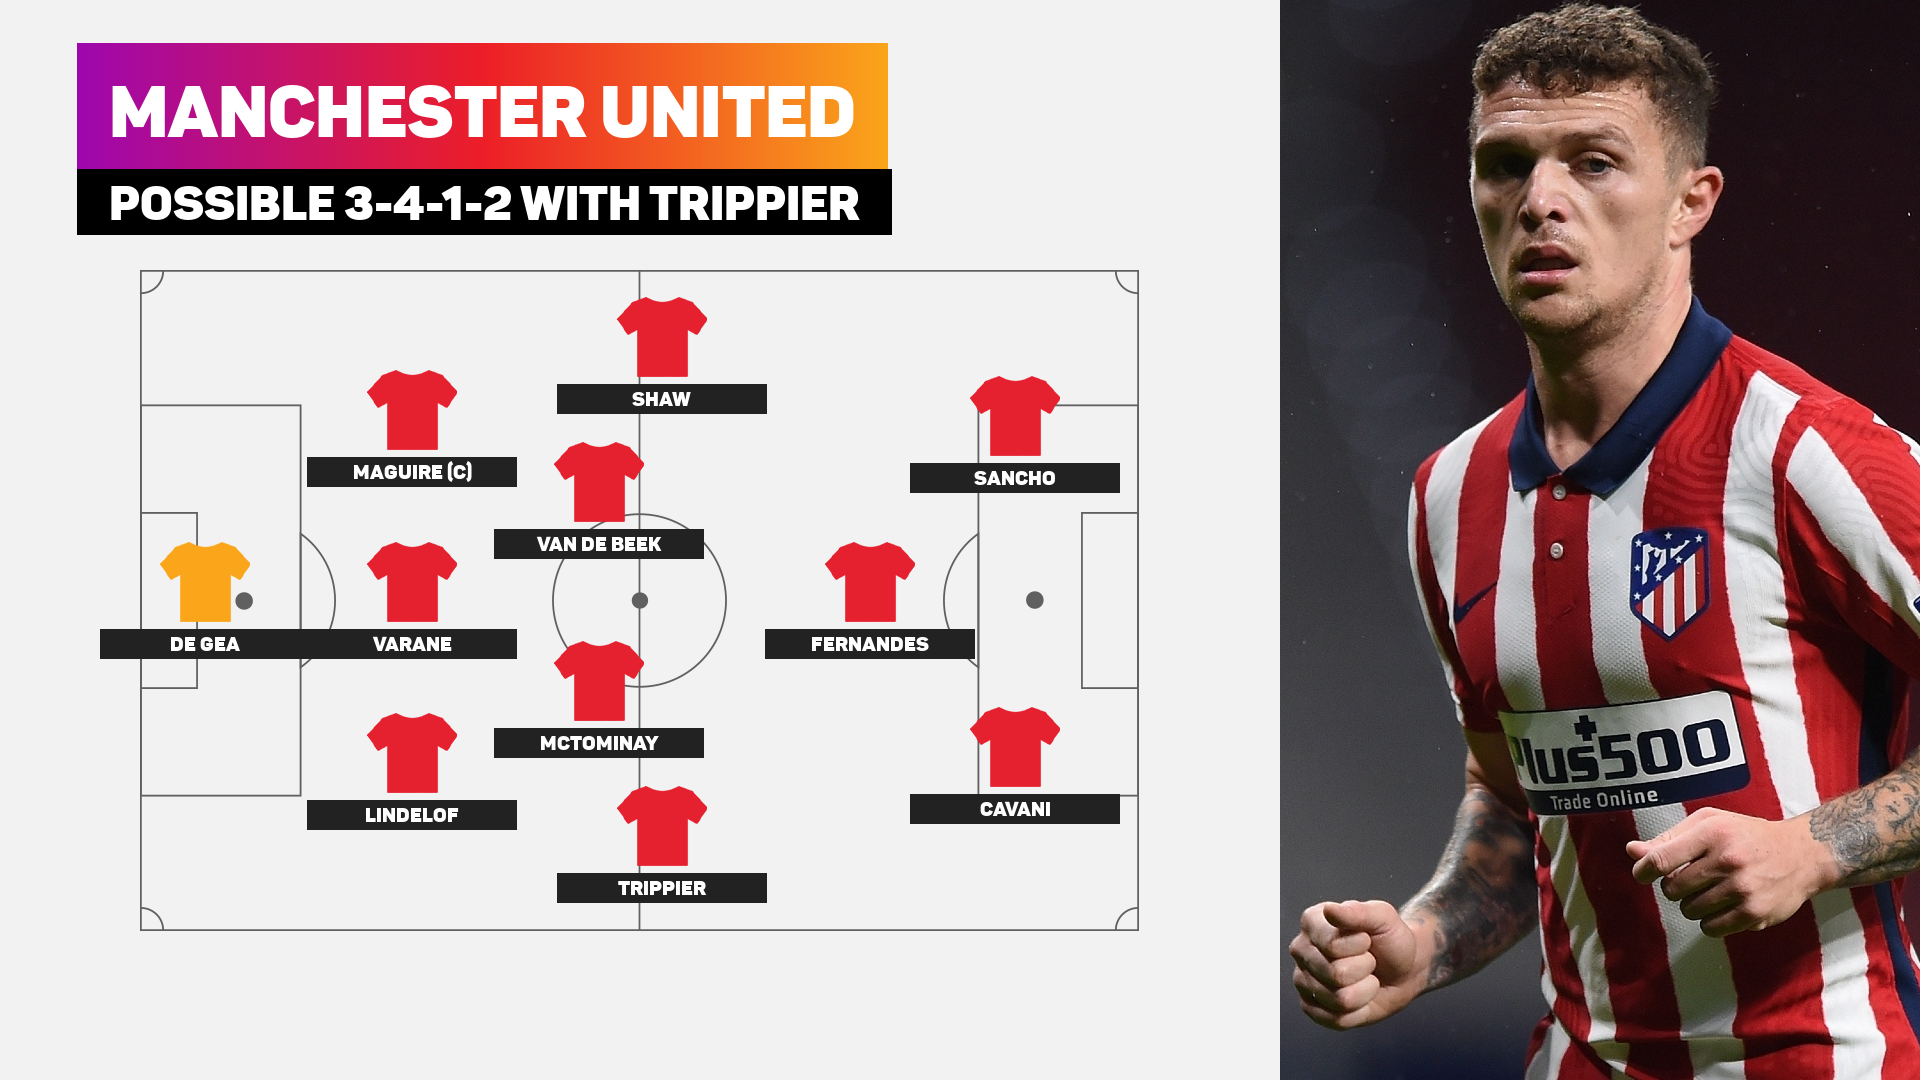 Man Utd possible line-up with Trippier